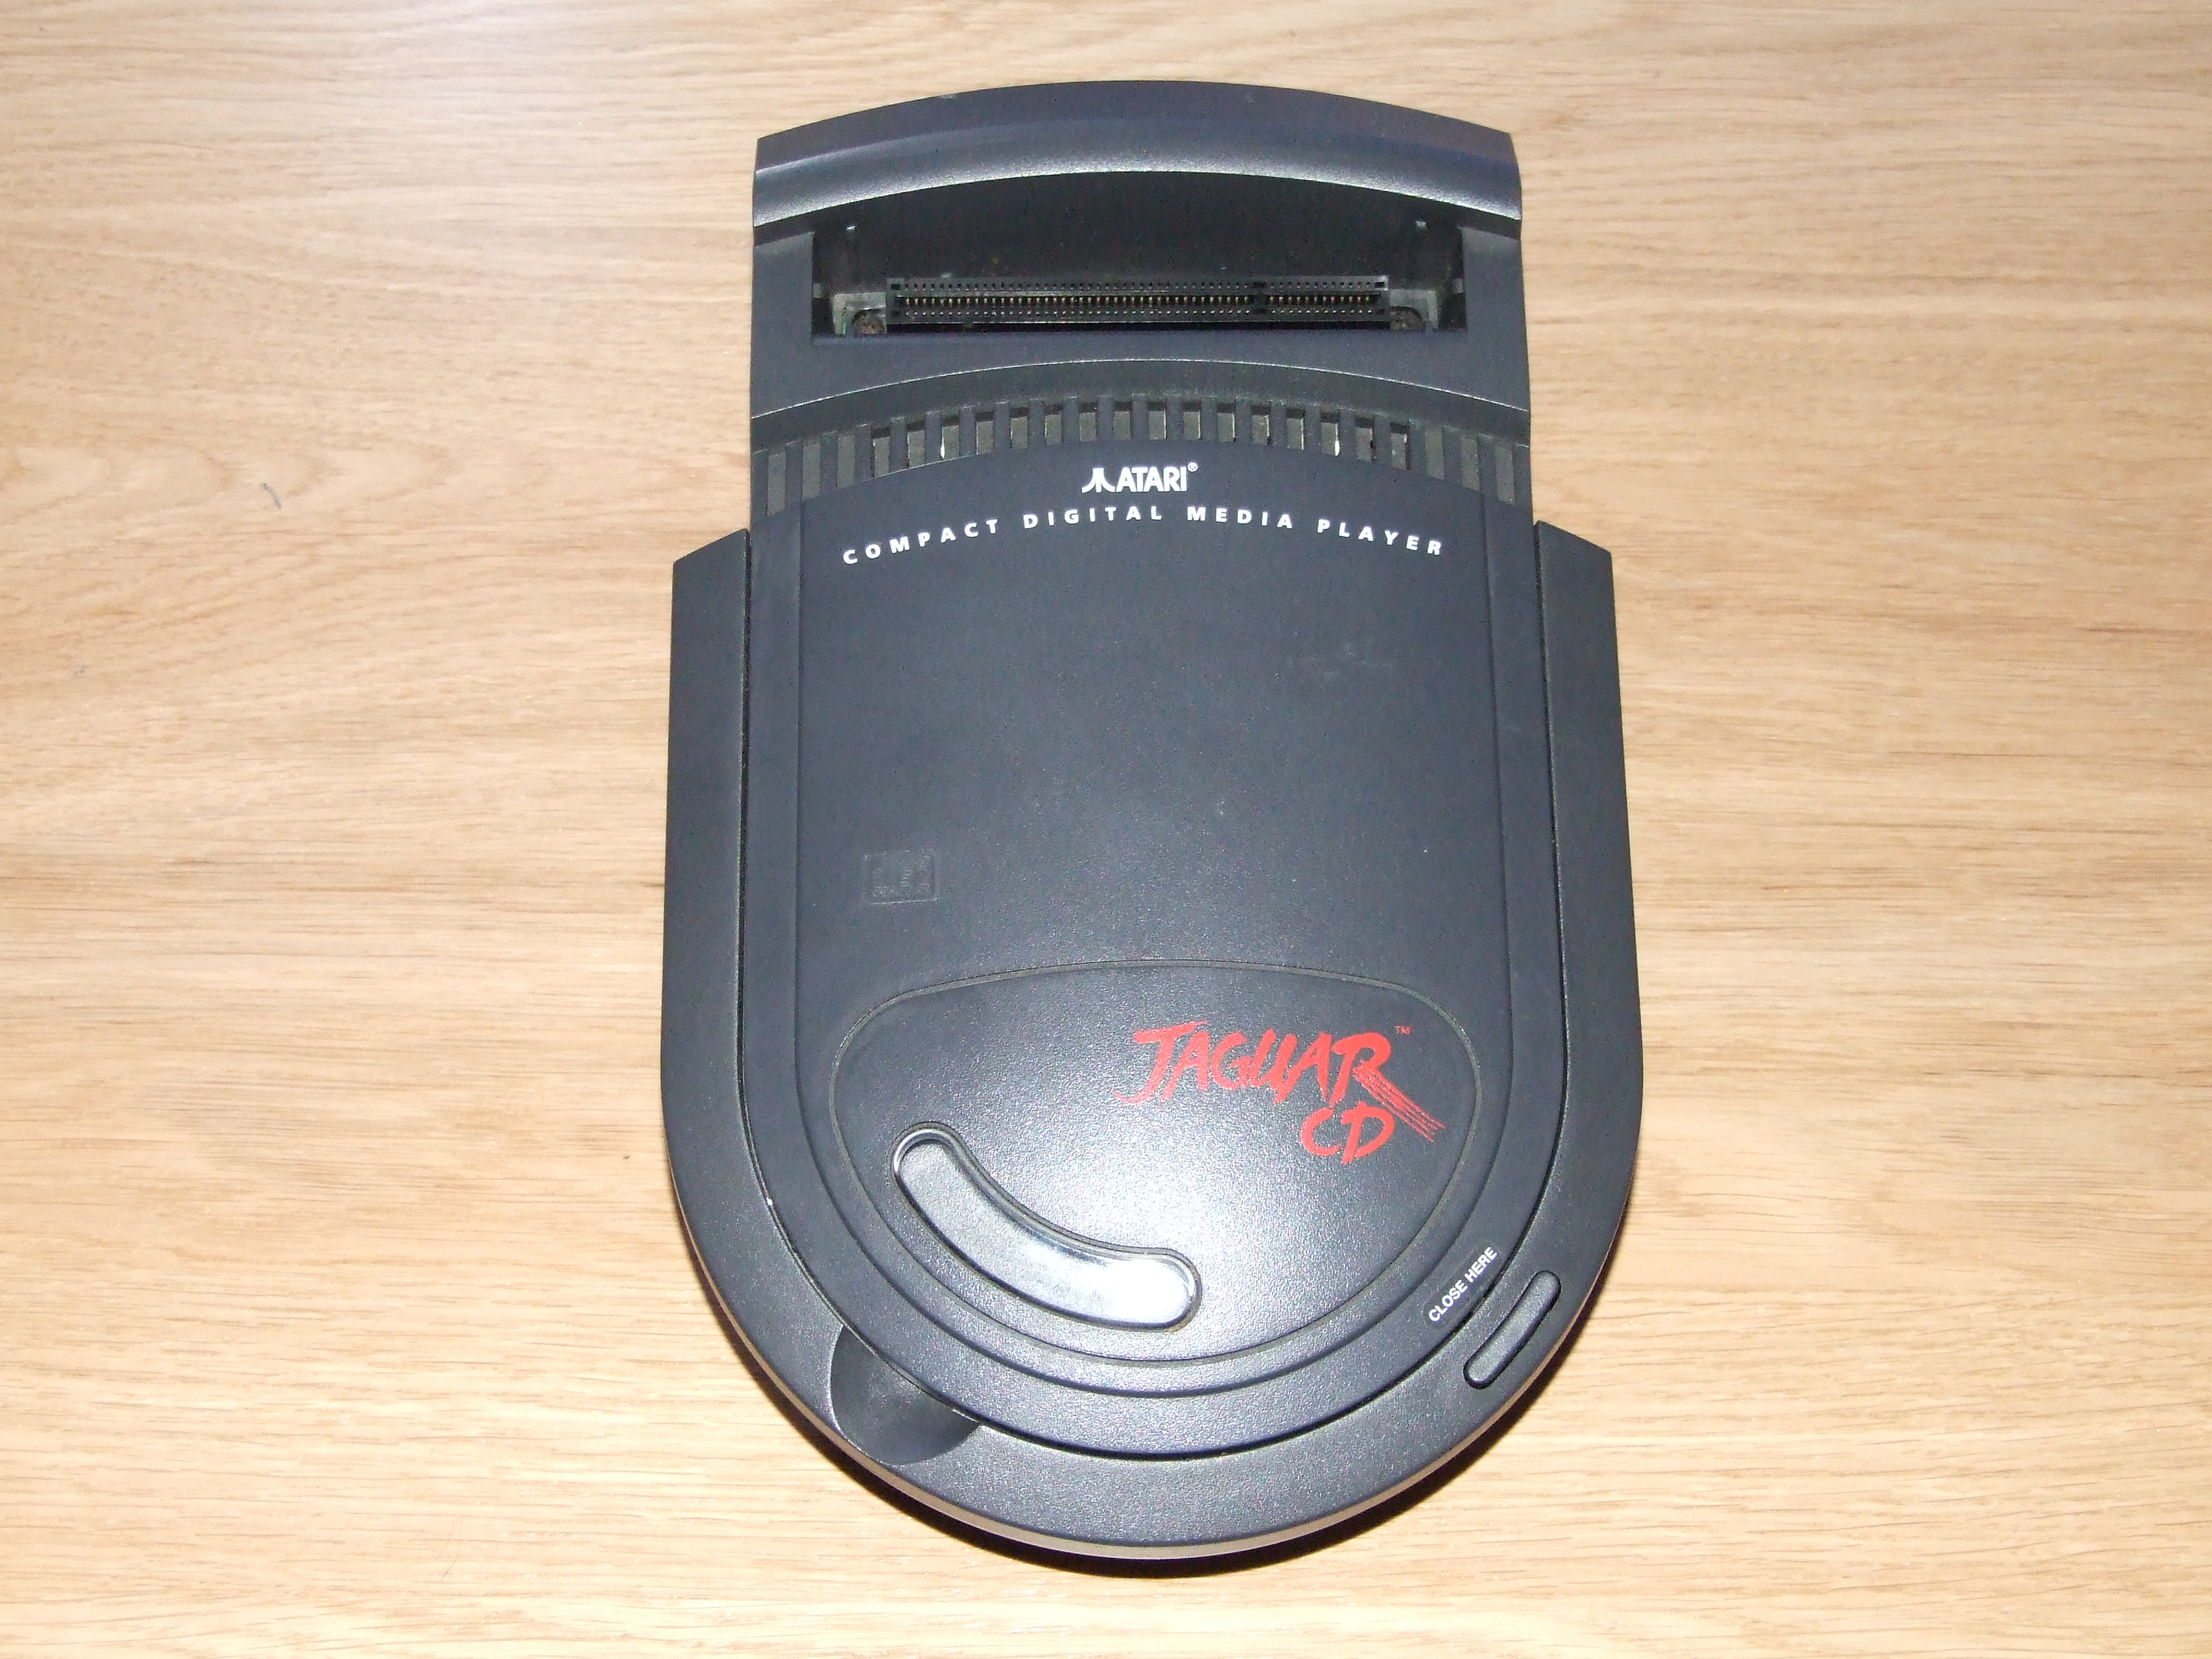 The Jaguar CD itself.